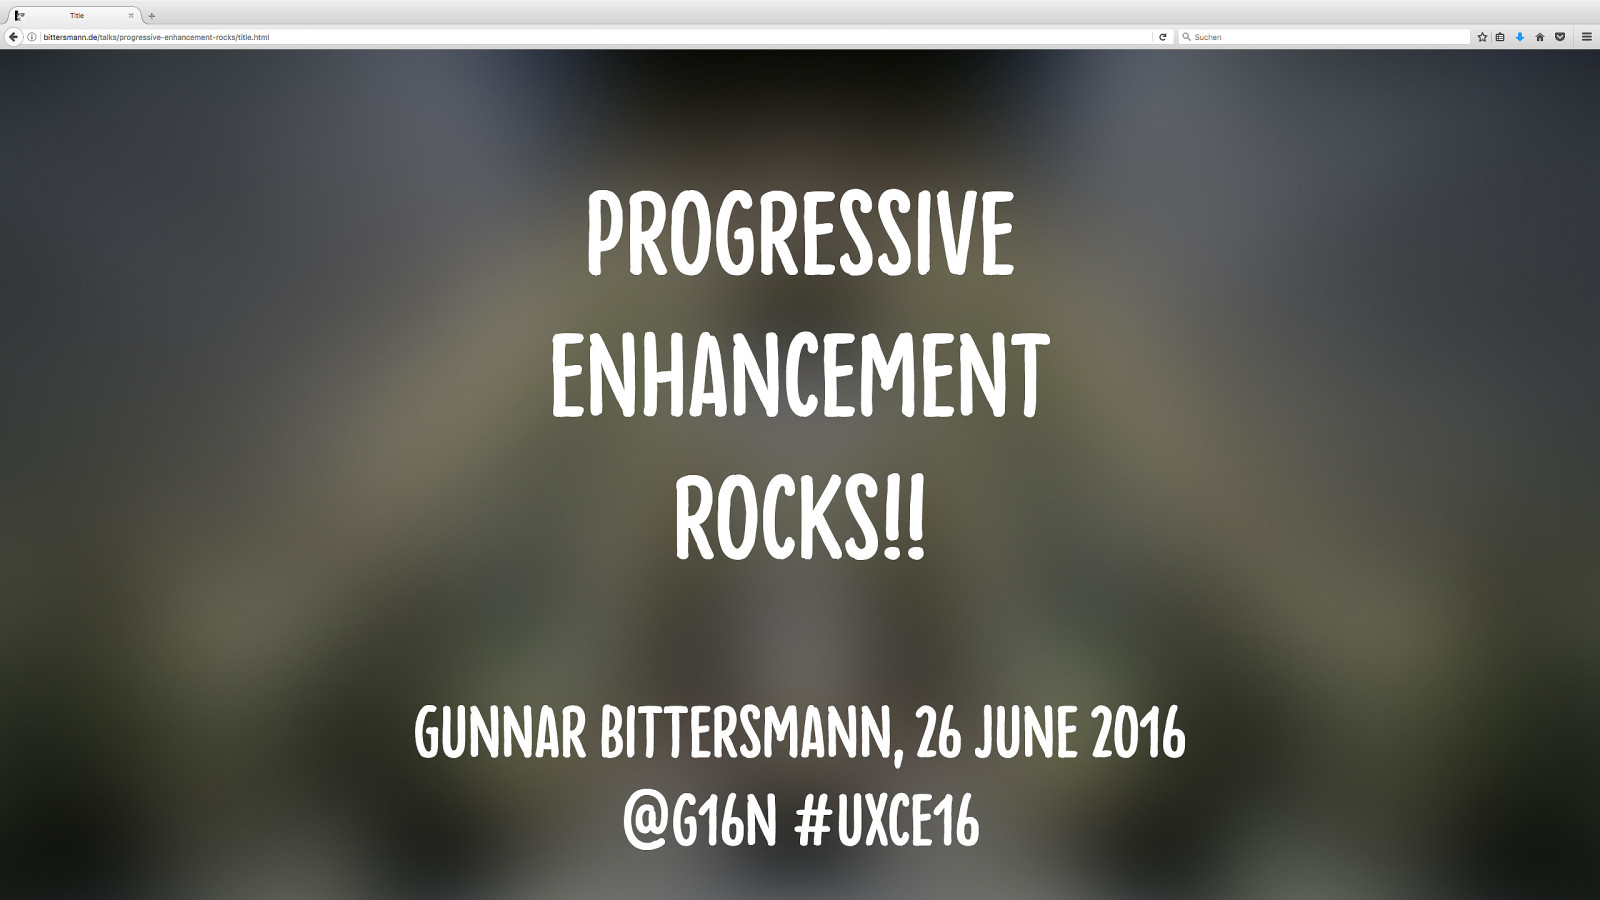 Progressive enhancement rocks!